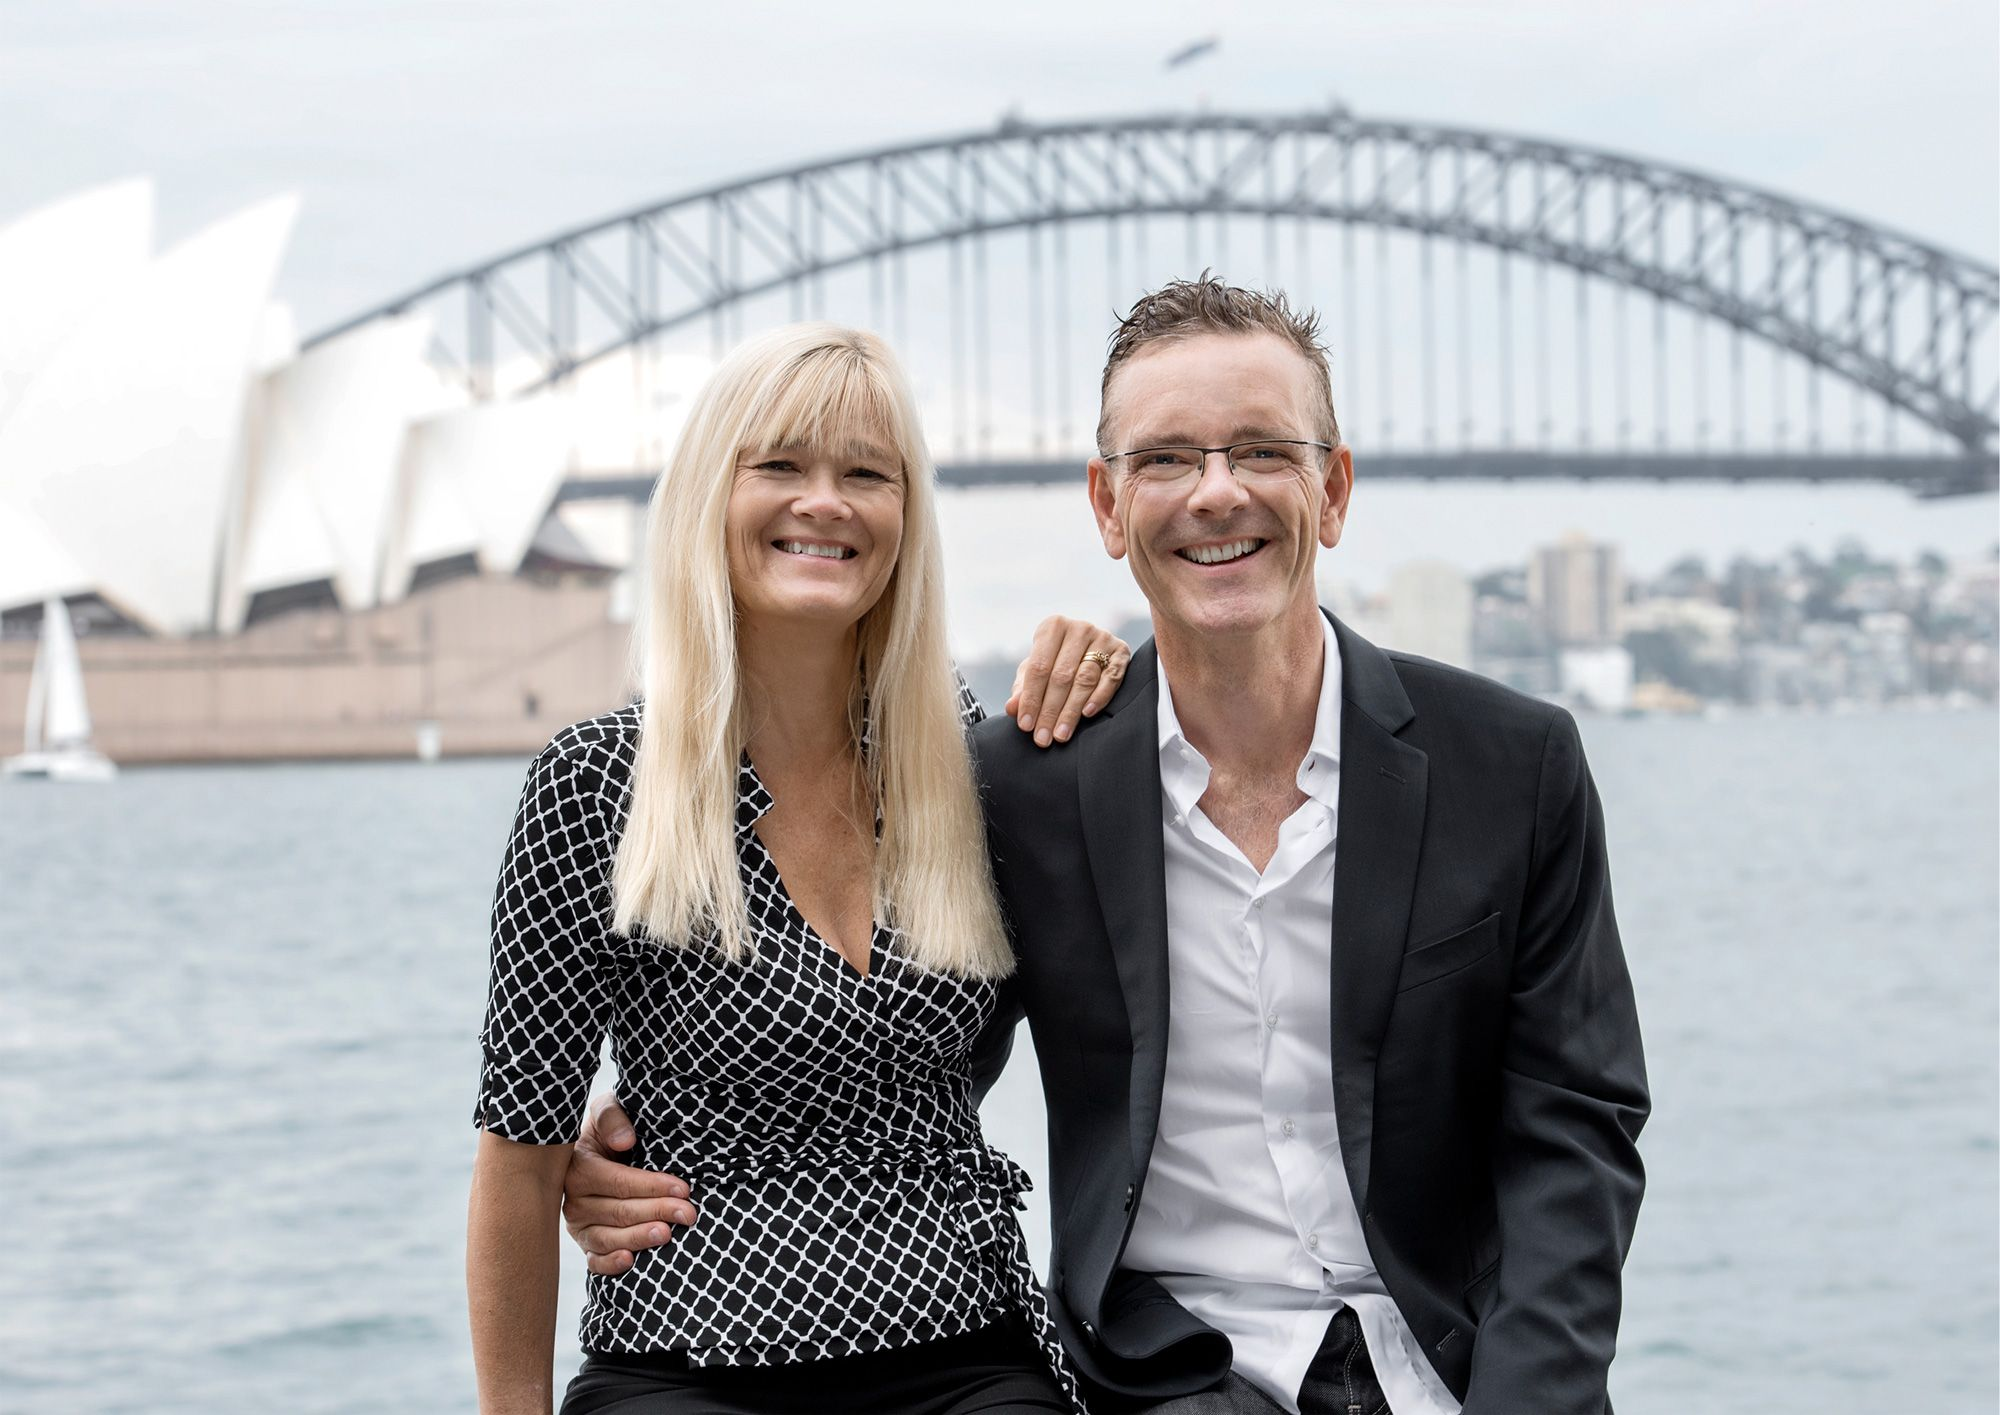 Our Founders Mette and Stig